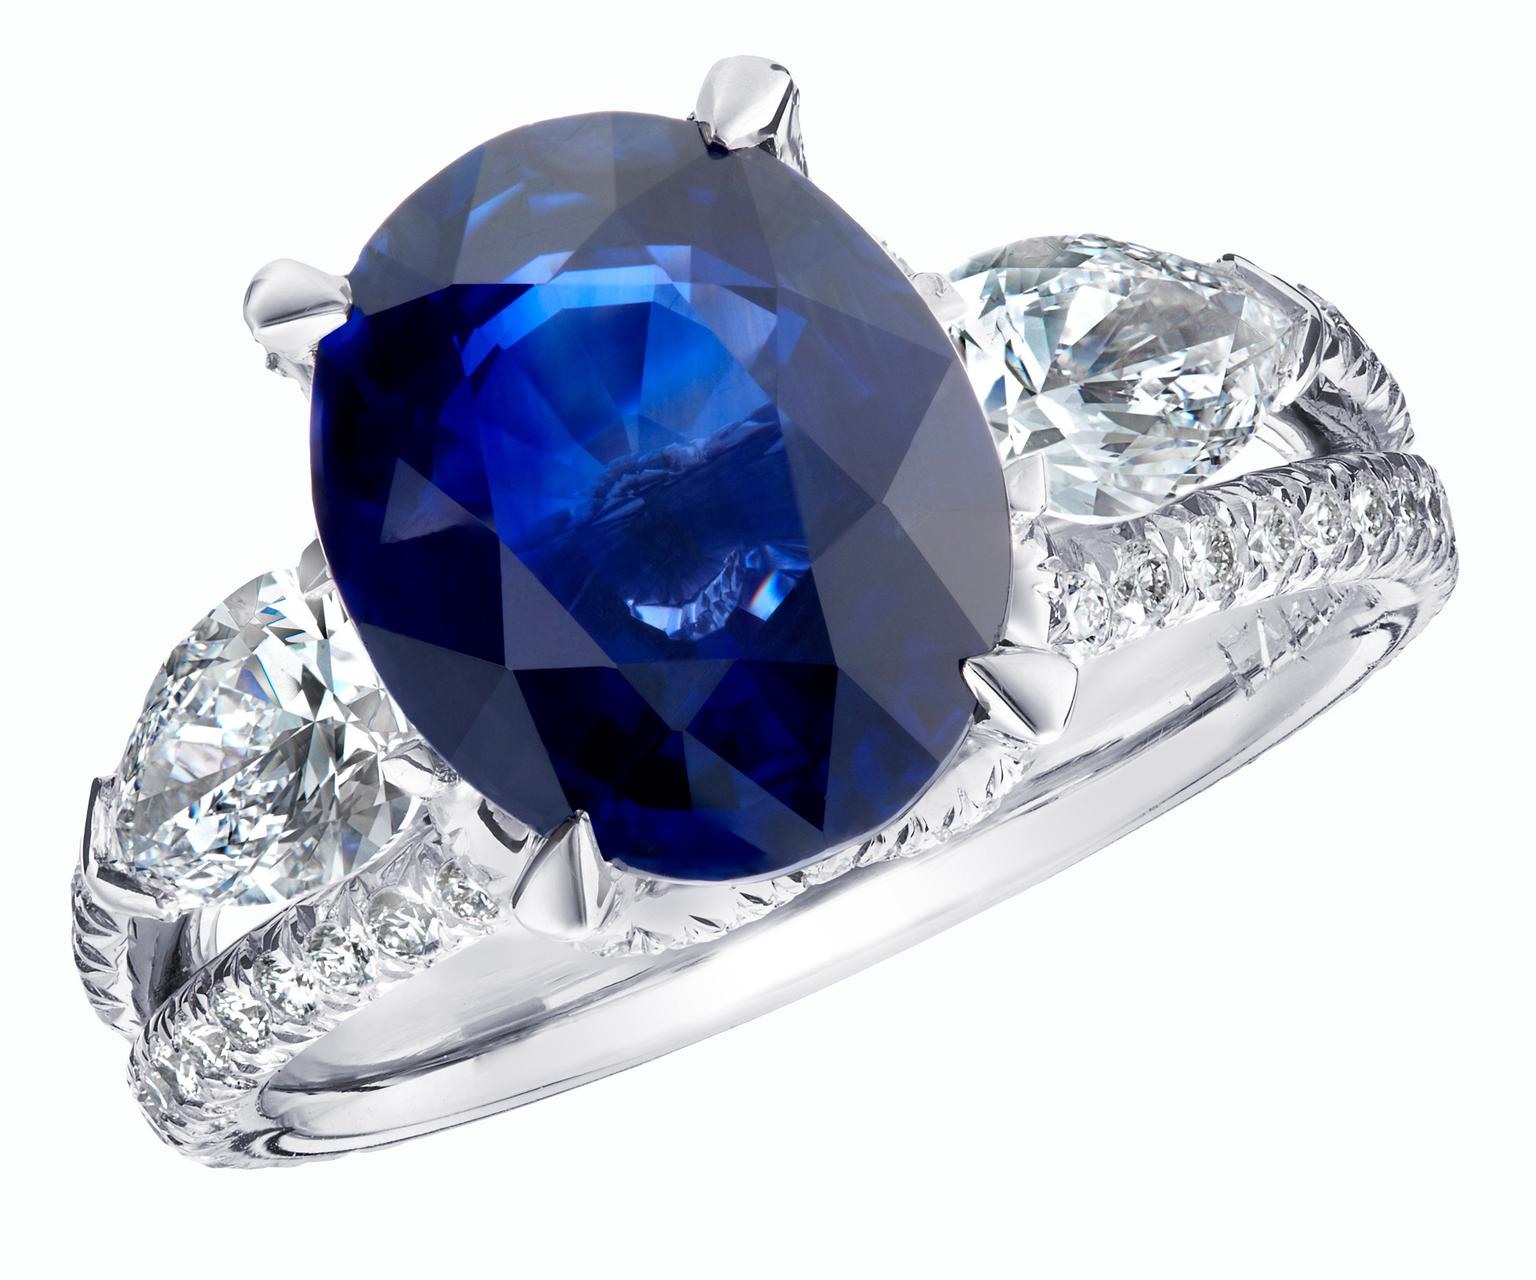 Faberge Devotion Blue Sapphire engagement ring_20140212_Zoom